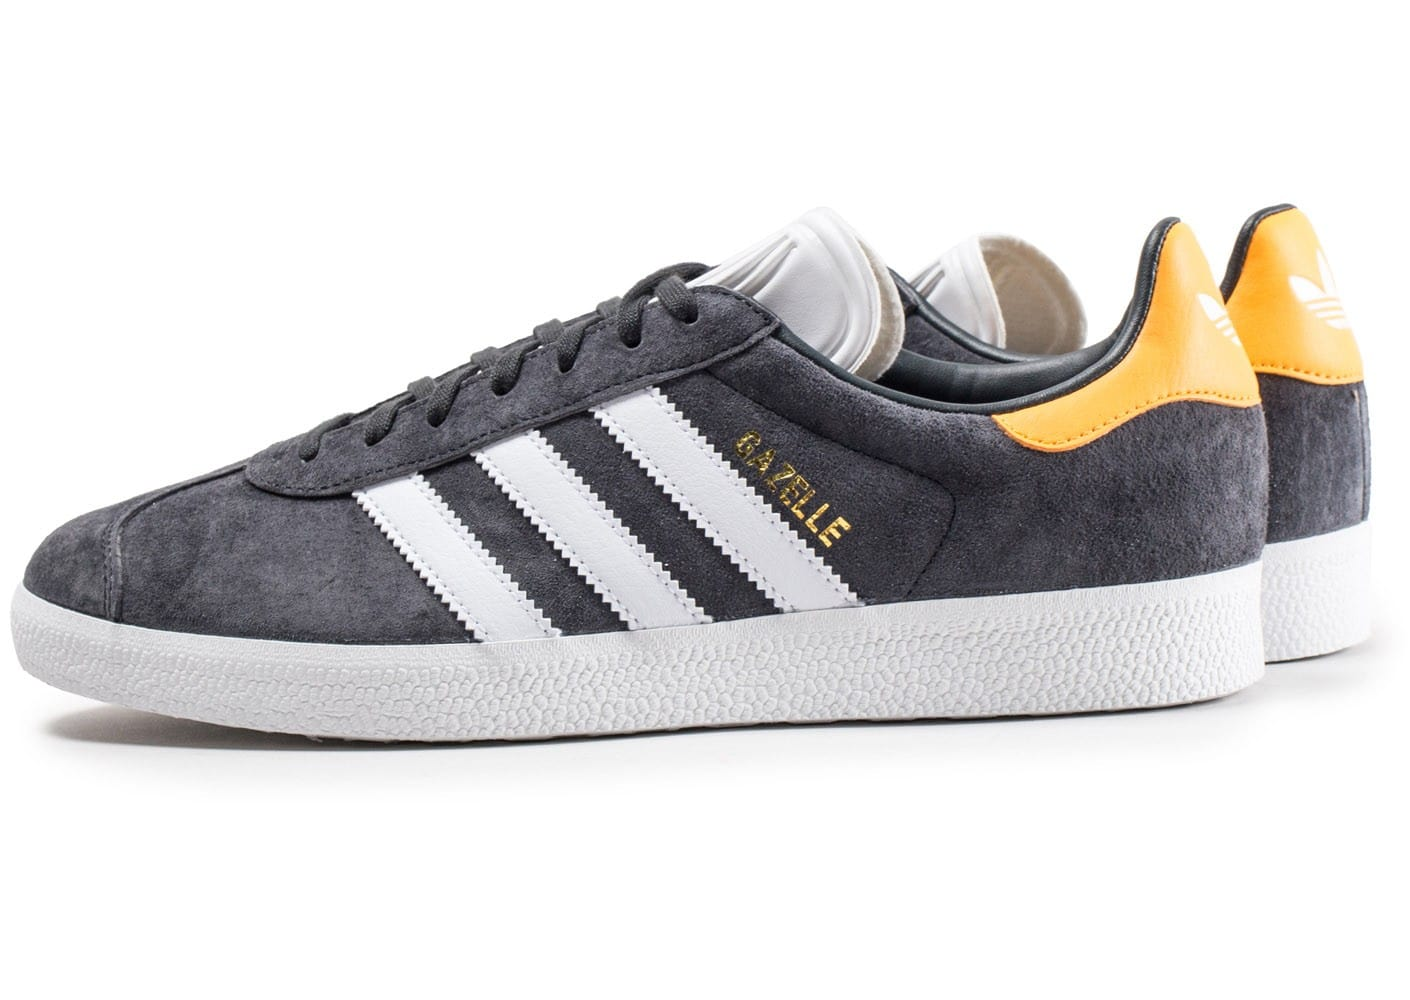 adidas gazelle grise fonc et jaune chaussures baskets homme chausport. Black Bedroom Furniture Sets. Home Design Ideas